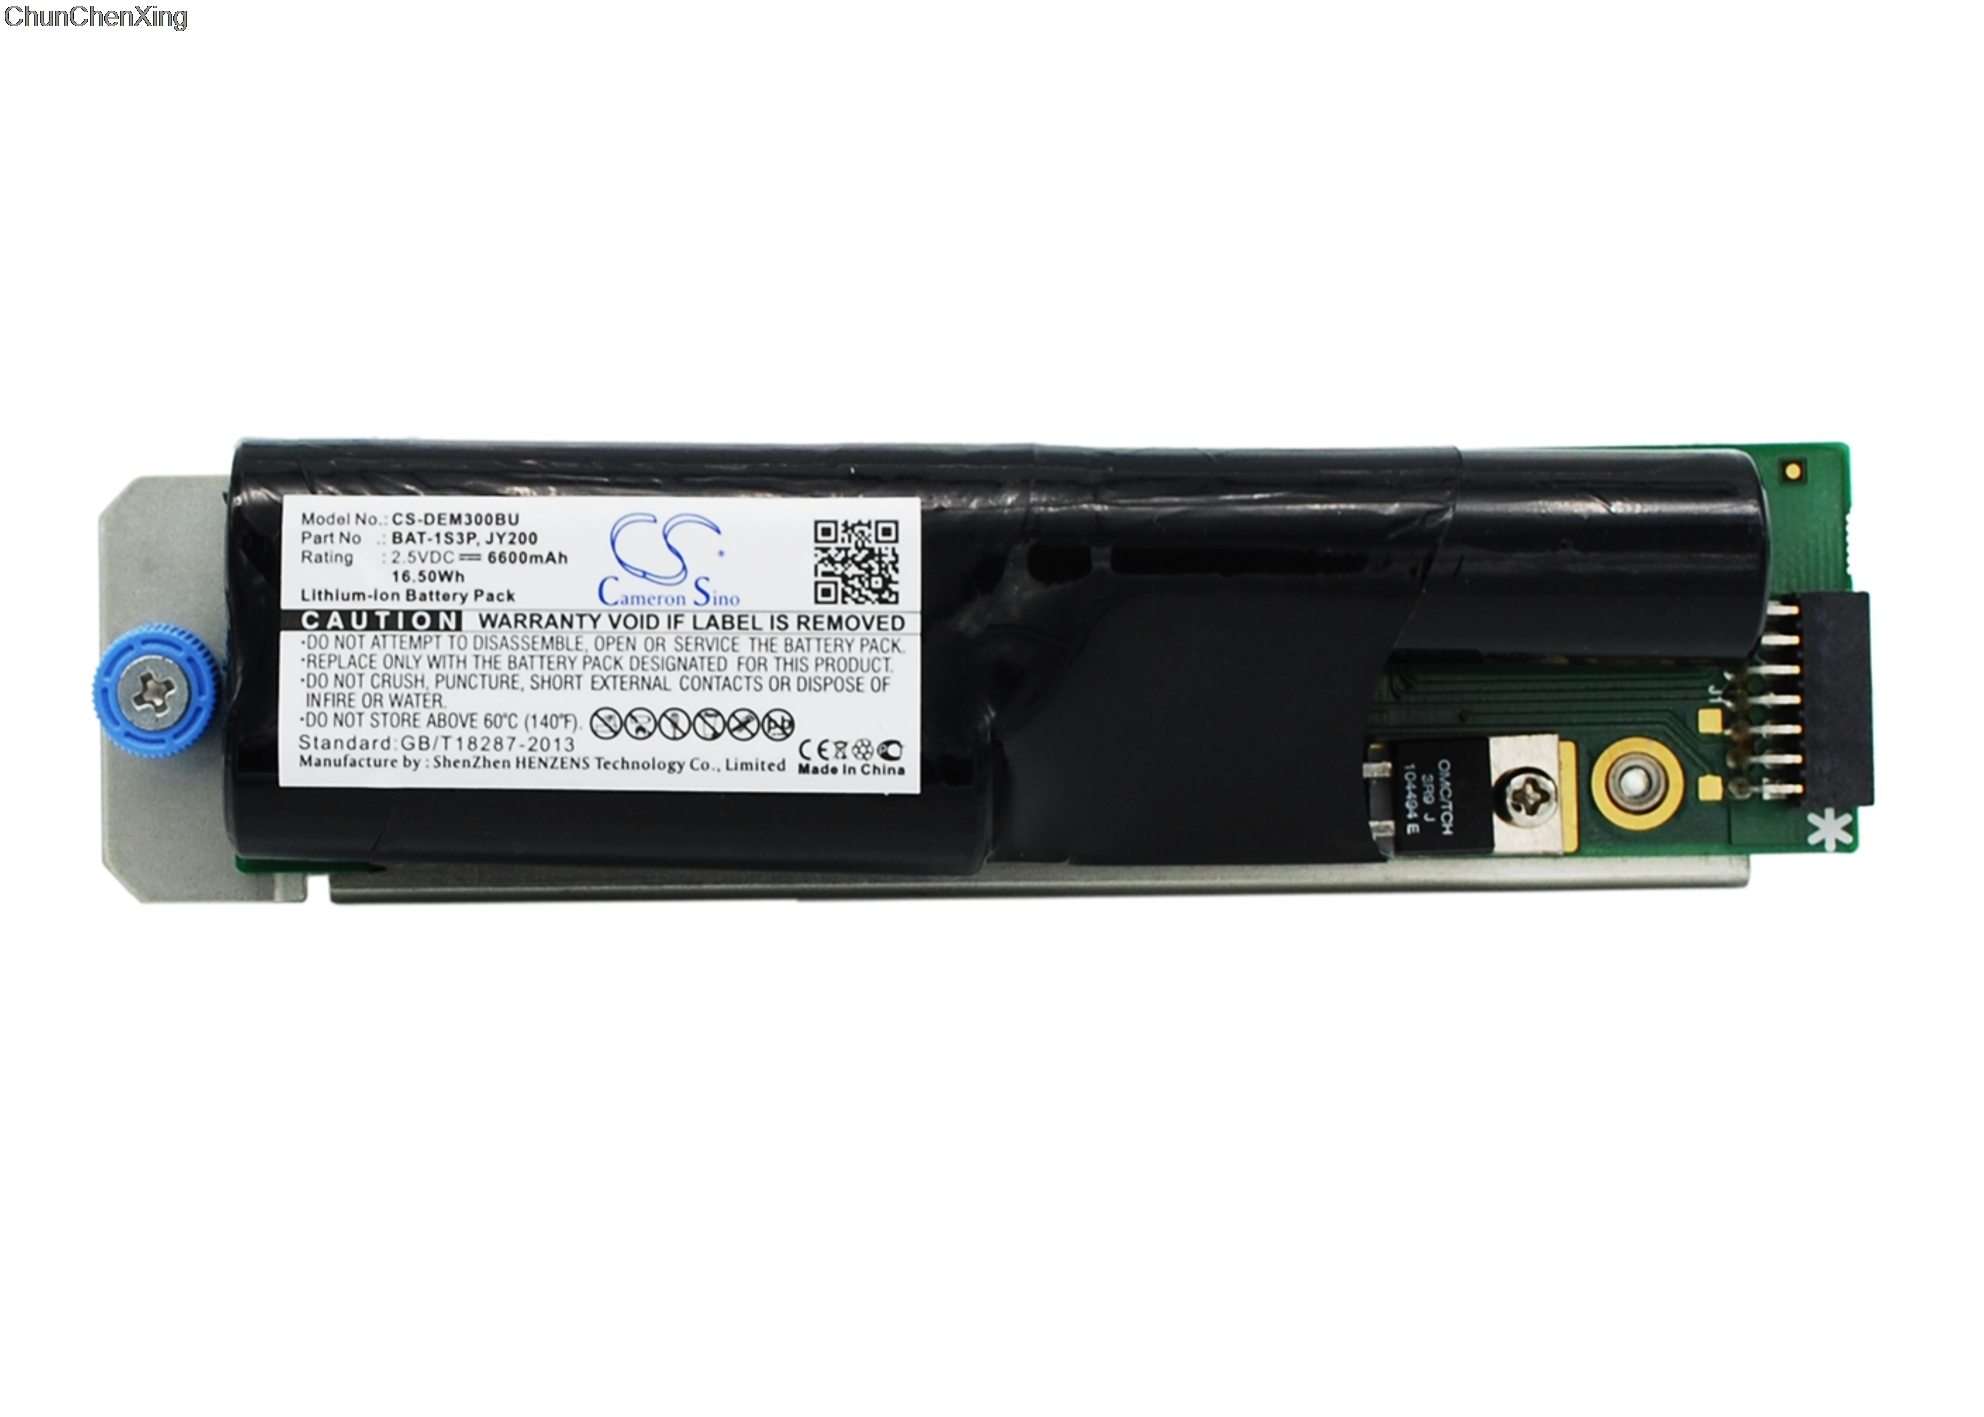 Cameron Sino 6600mAh Battery for DELL PowerVault  MB3000I, MD3000, For IBM System Storage DS3400, DS3500, DS3512, DS3524, DS3700Cameron Sino 6600mAh Battery for DELL PowerVault  MB3000I, MD3000, For IBM System Storage DS3400, DS3500, DS3512, DS3524, DS3700